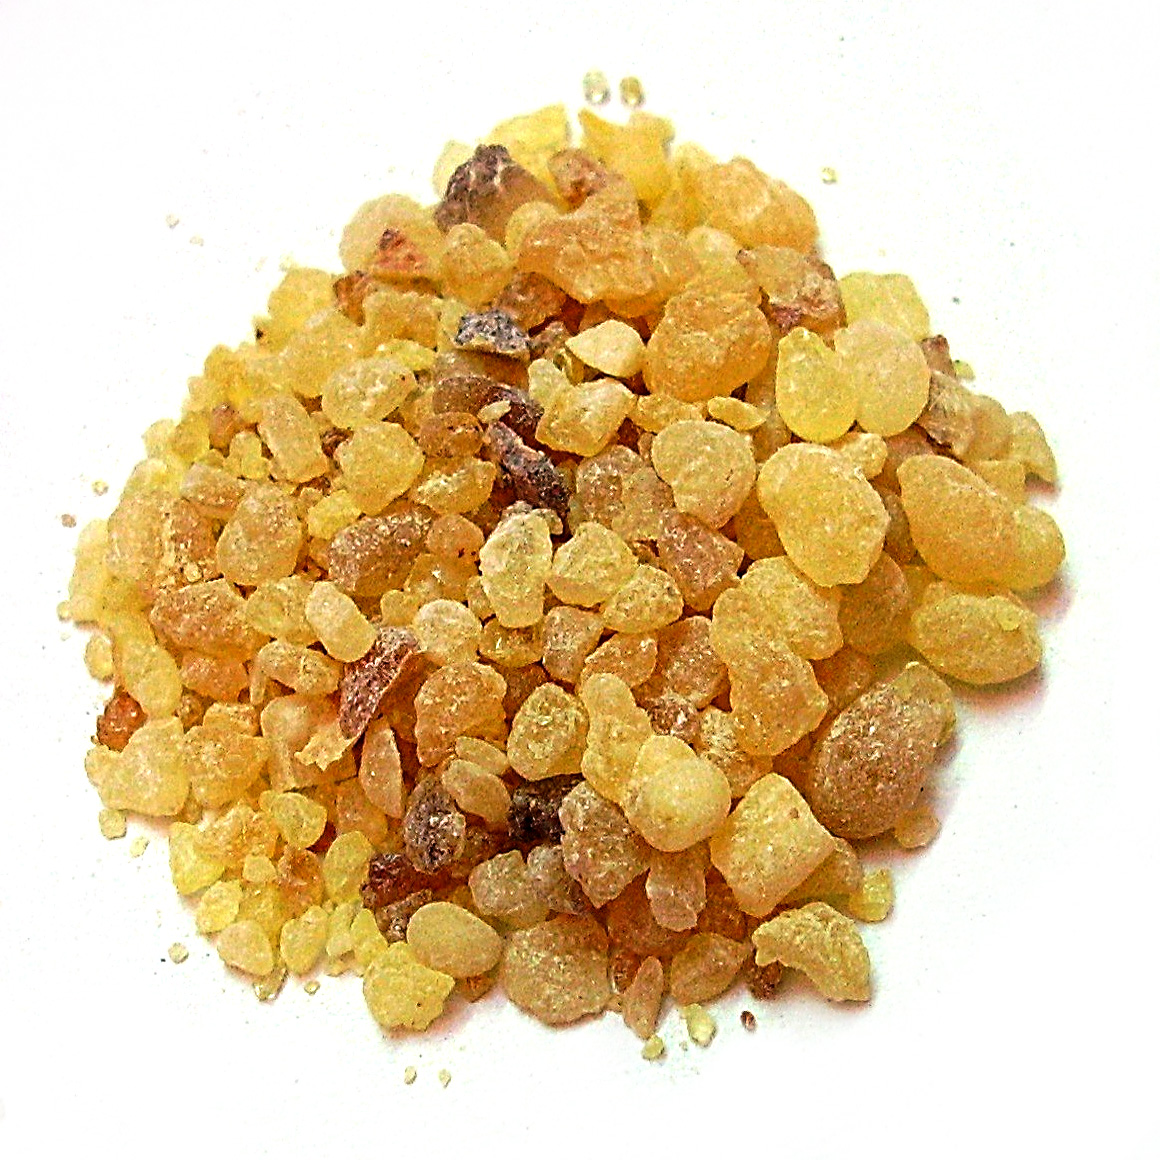 Frankincense is resin from the Boswellia plant.